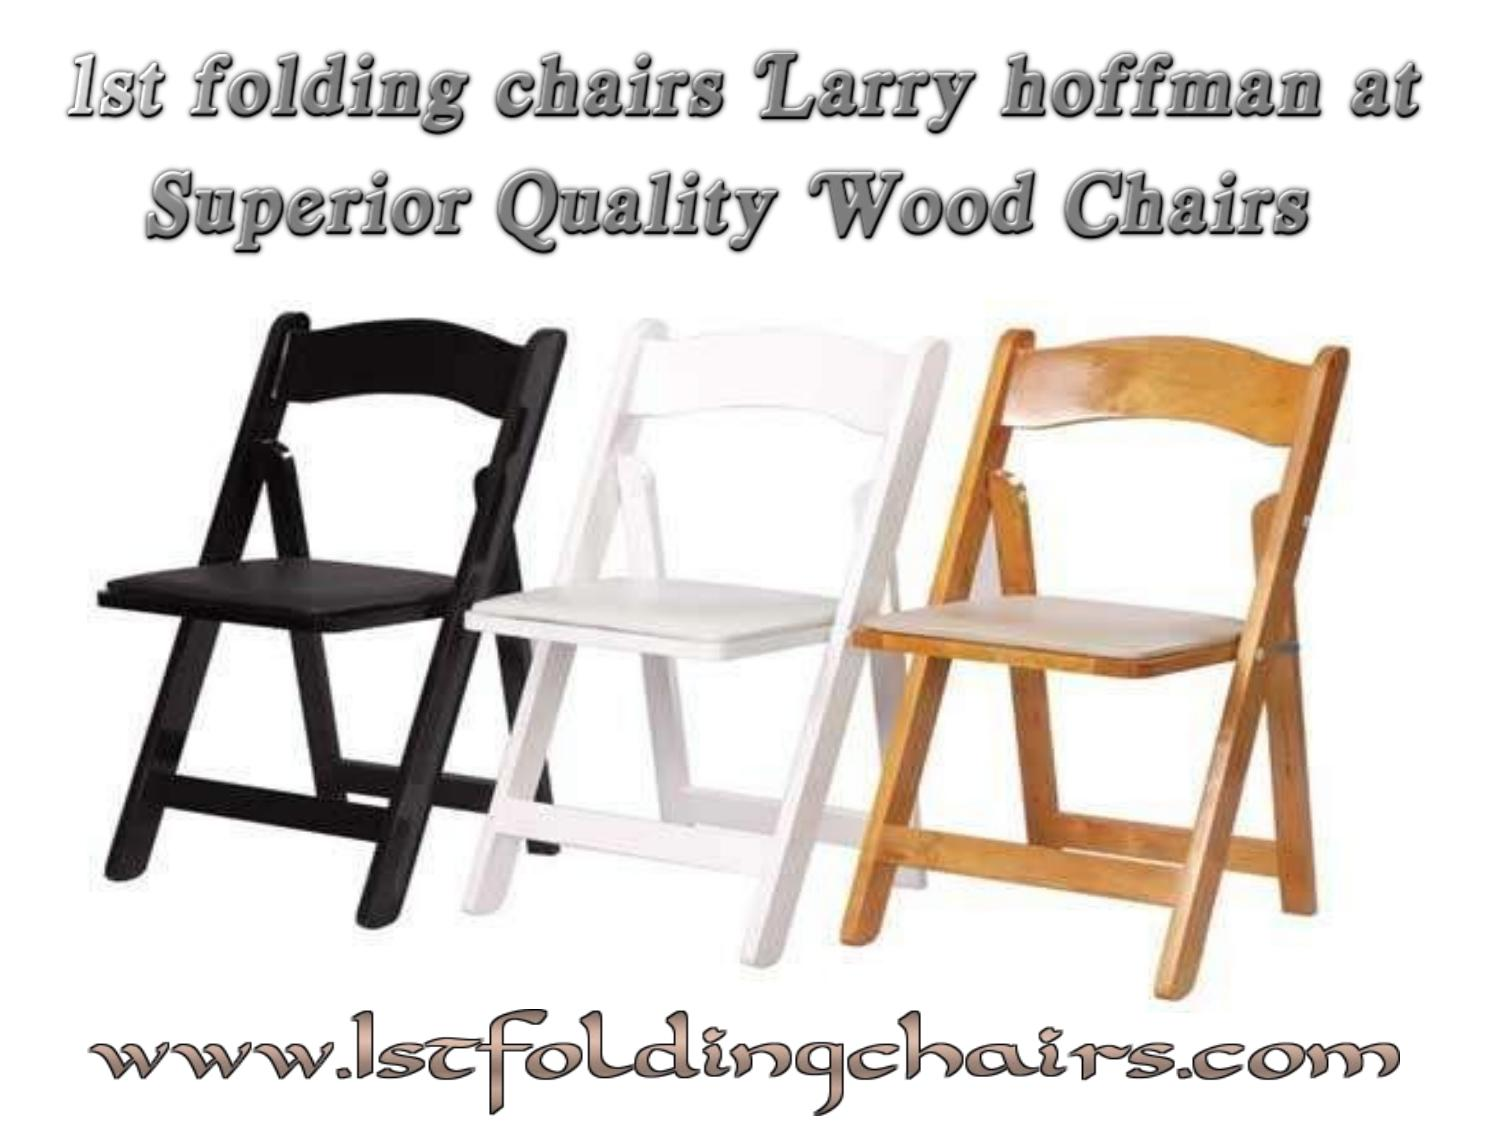 Soft Folding Chairs 1st Folding Chairs Larry Hoffman At Superior Quality Wood Chairs